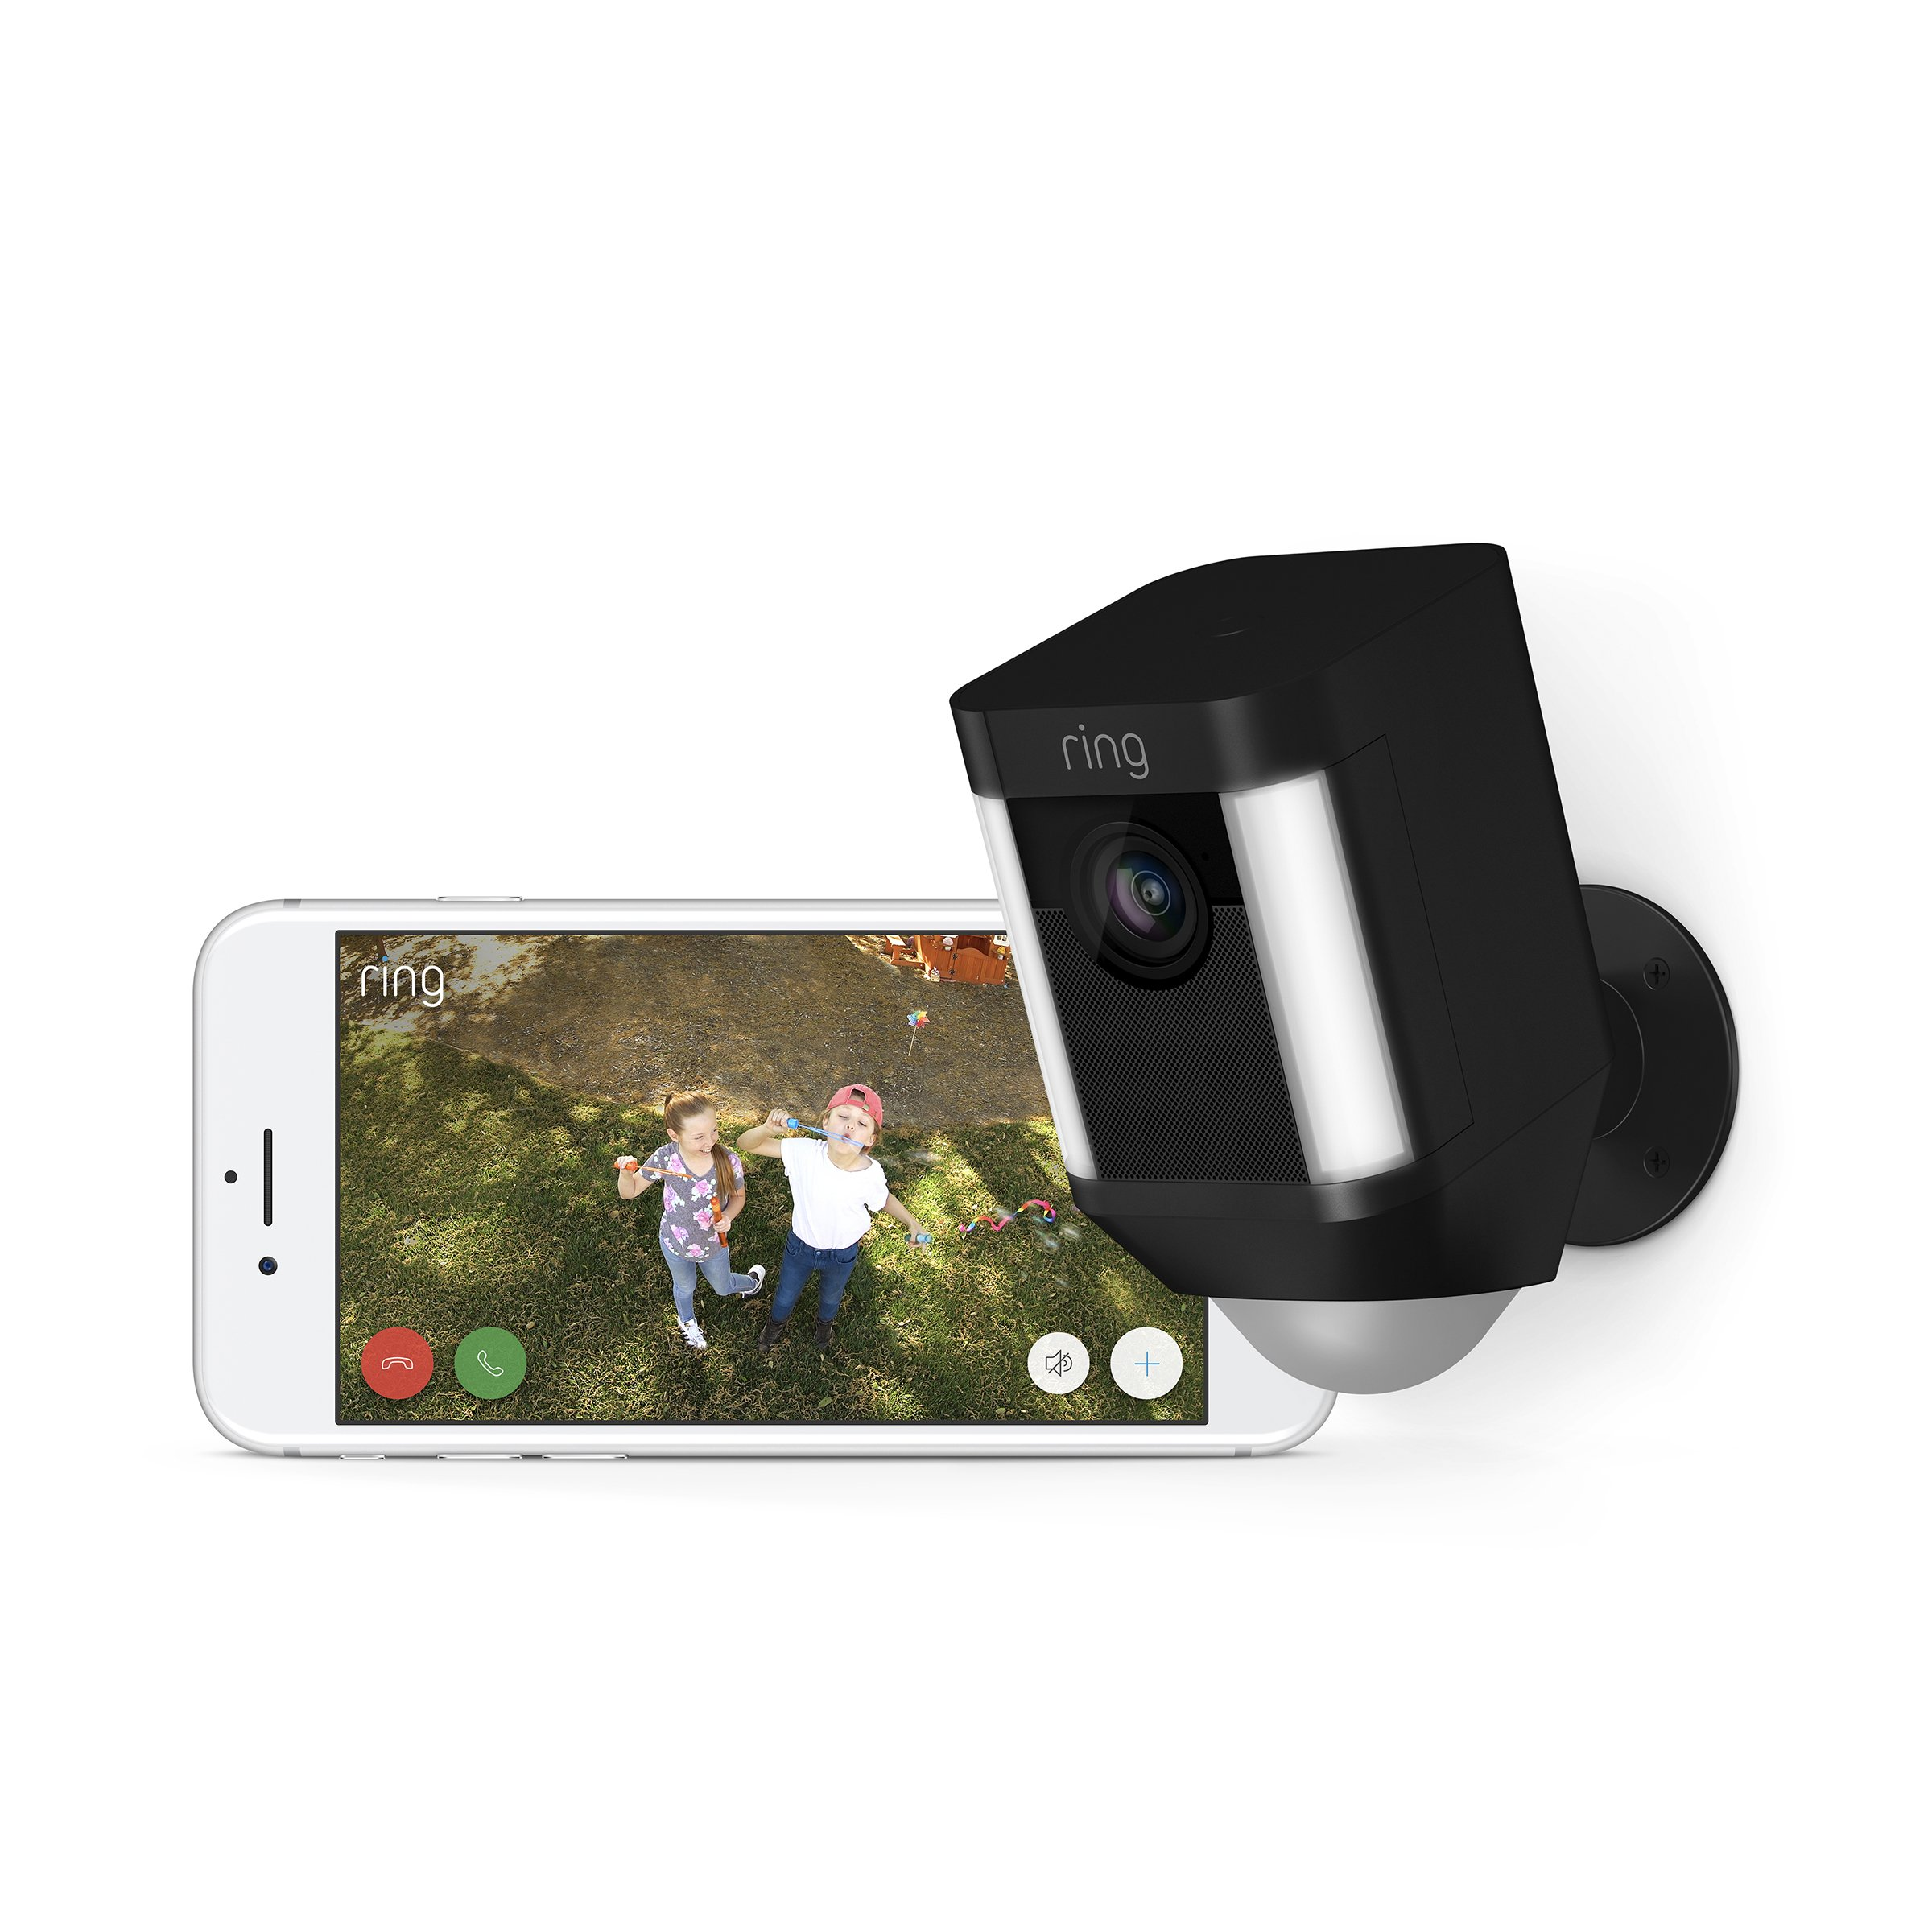 Ring Spotlight Cam Battery HD Security Camera with Built Two-Way Talk and a Siren Alarm, Black, Works with Alexa by Ring (Image #3)